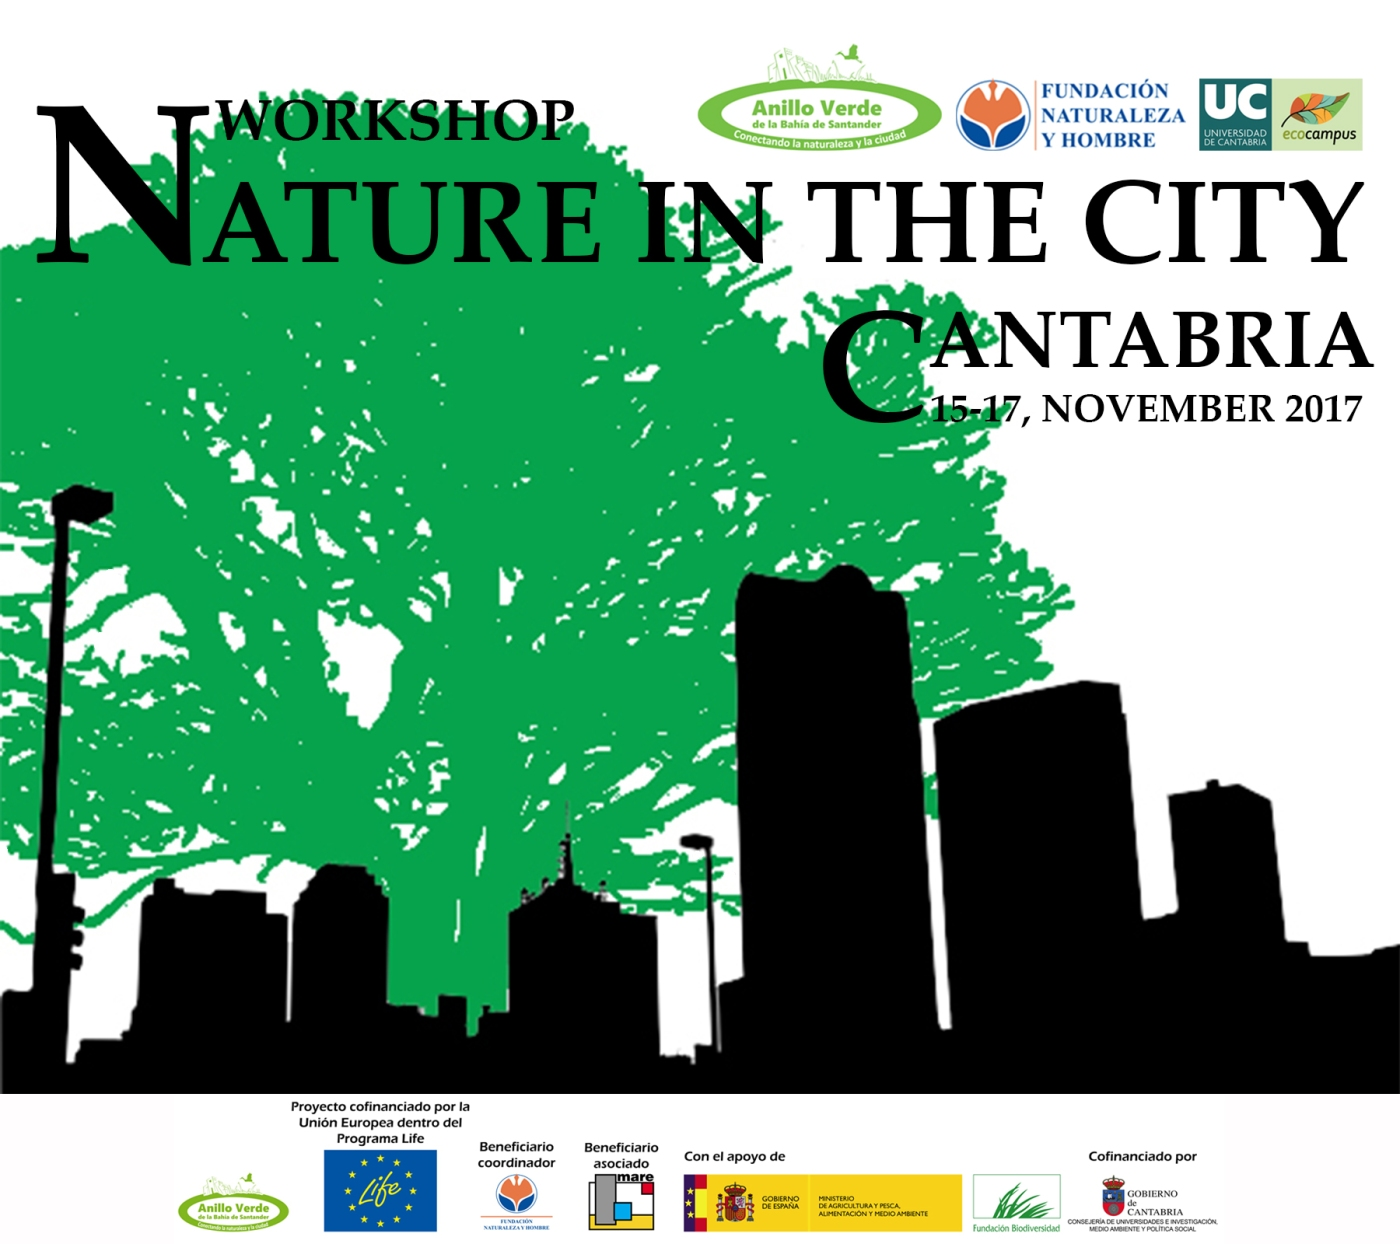 Workshop Nature In The City, 15-17 Nov 2017